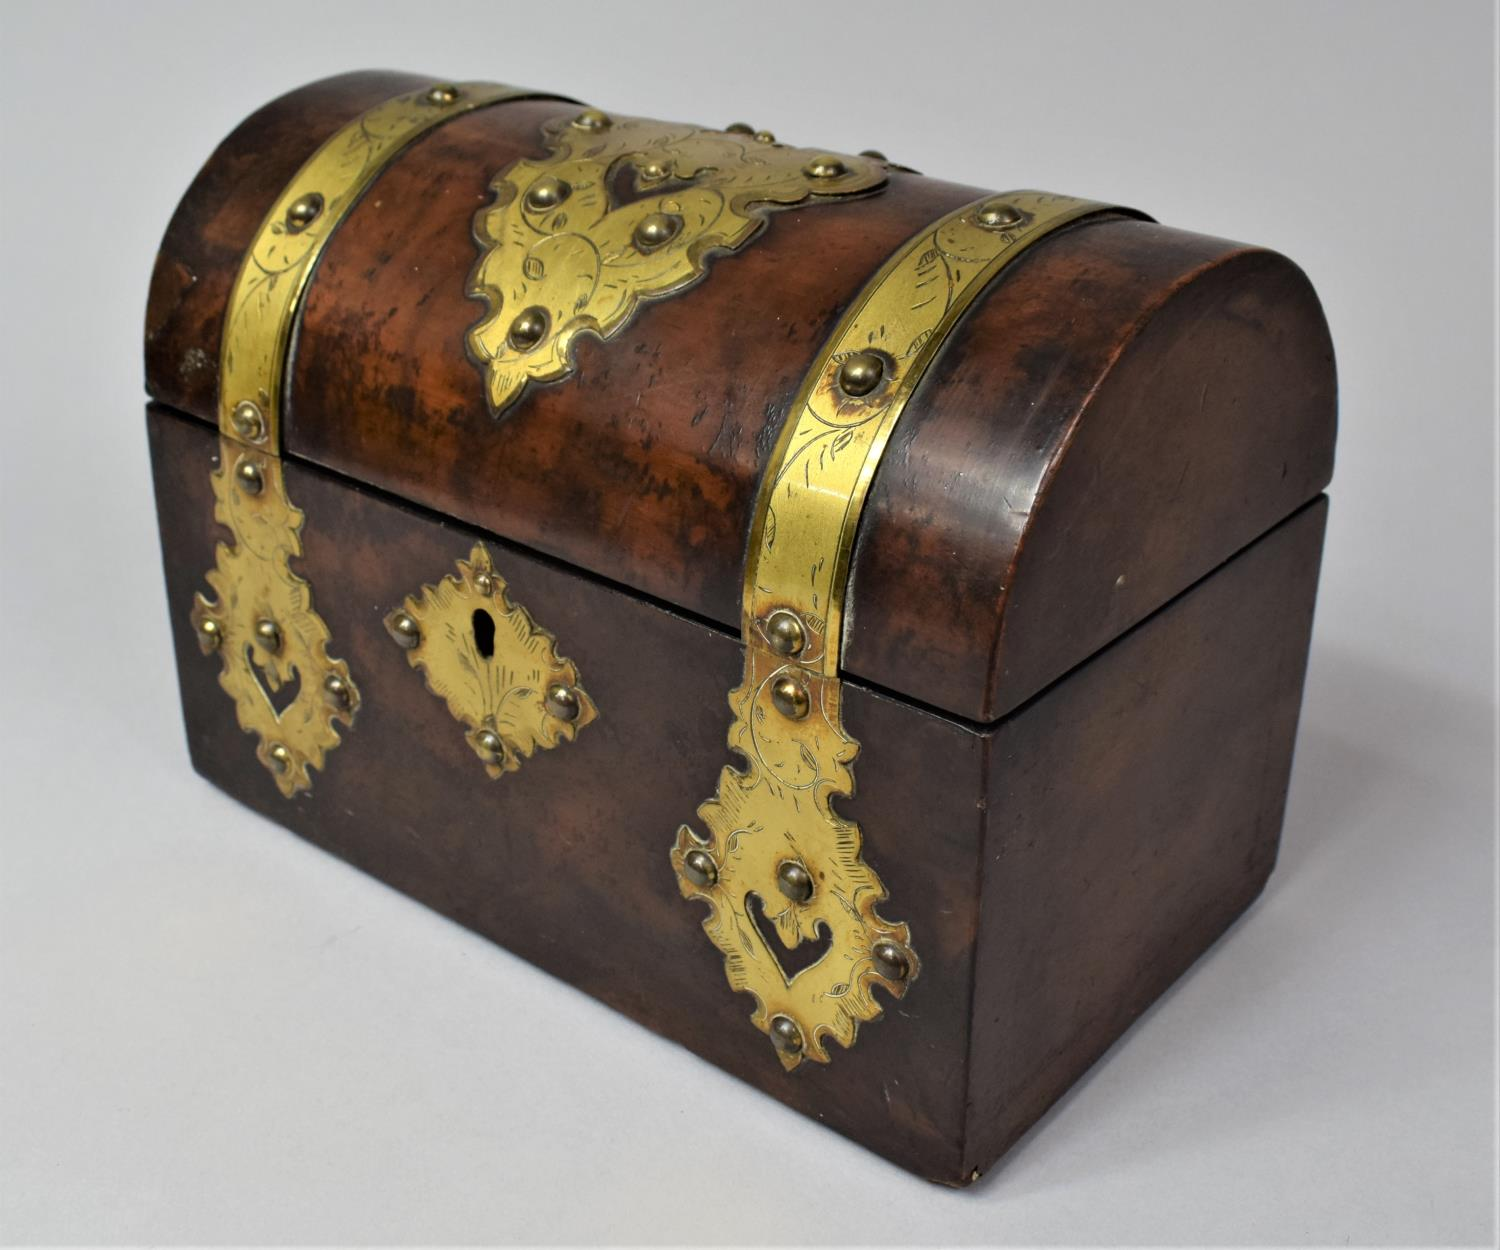 A Victorian Brass Mounted Burr Walnut, Dome Topped Casket with Hinged Lid, 20cm Wide - Image 3 of 5